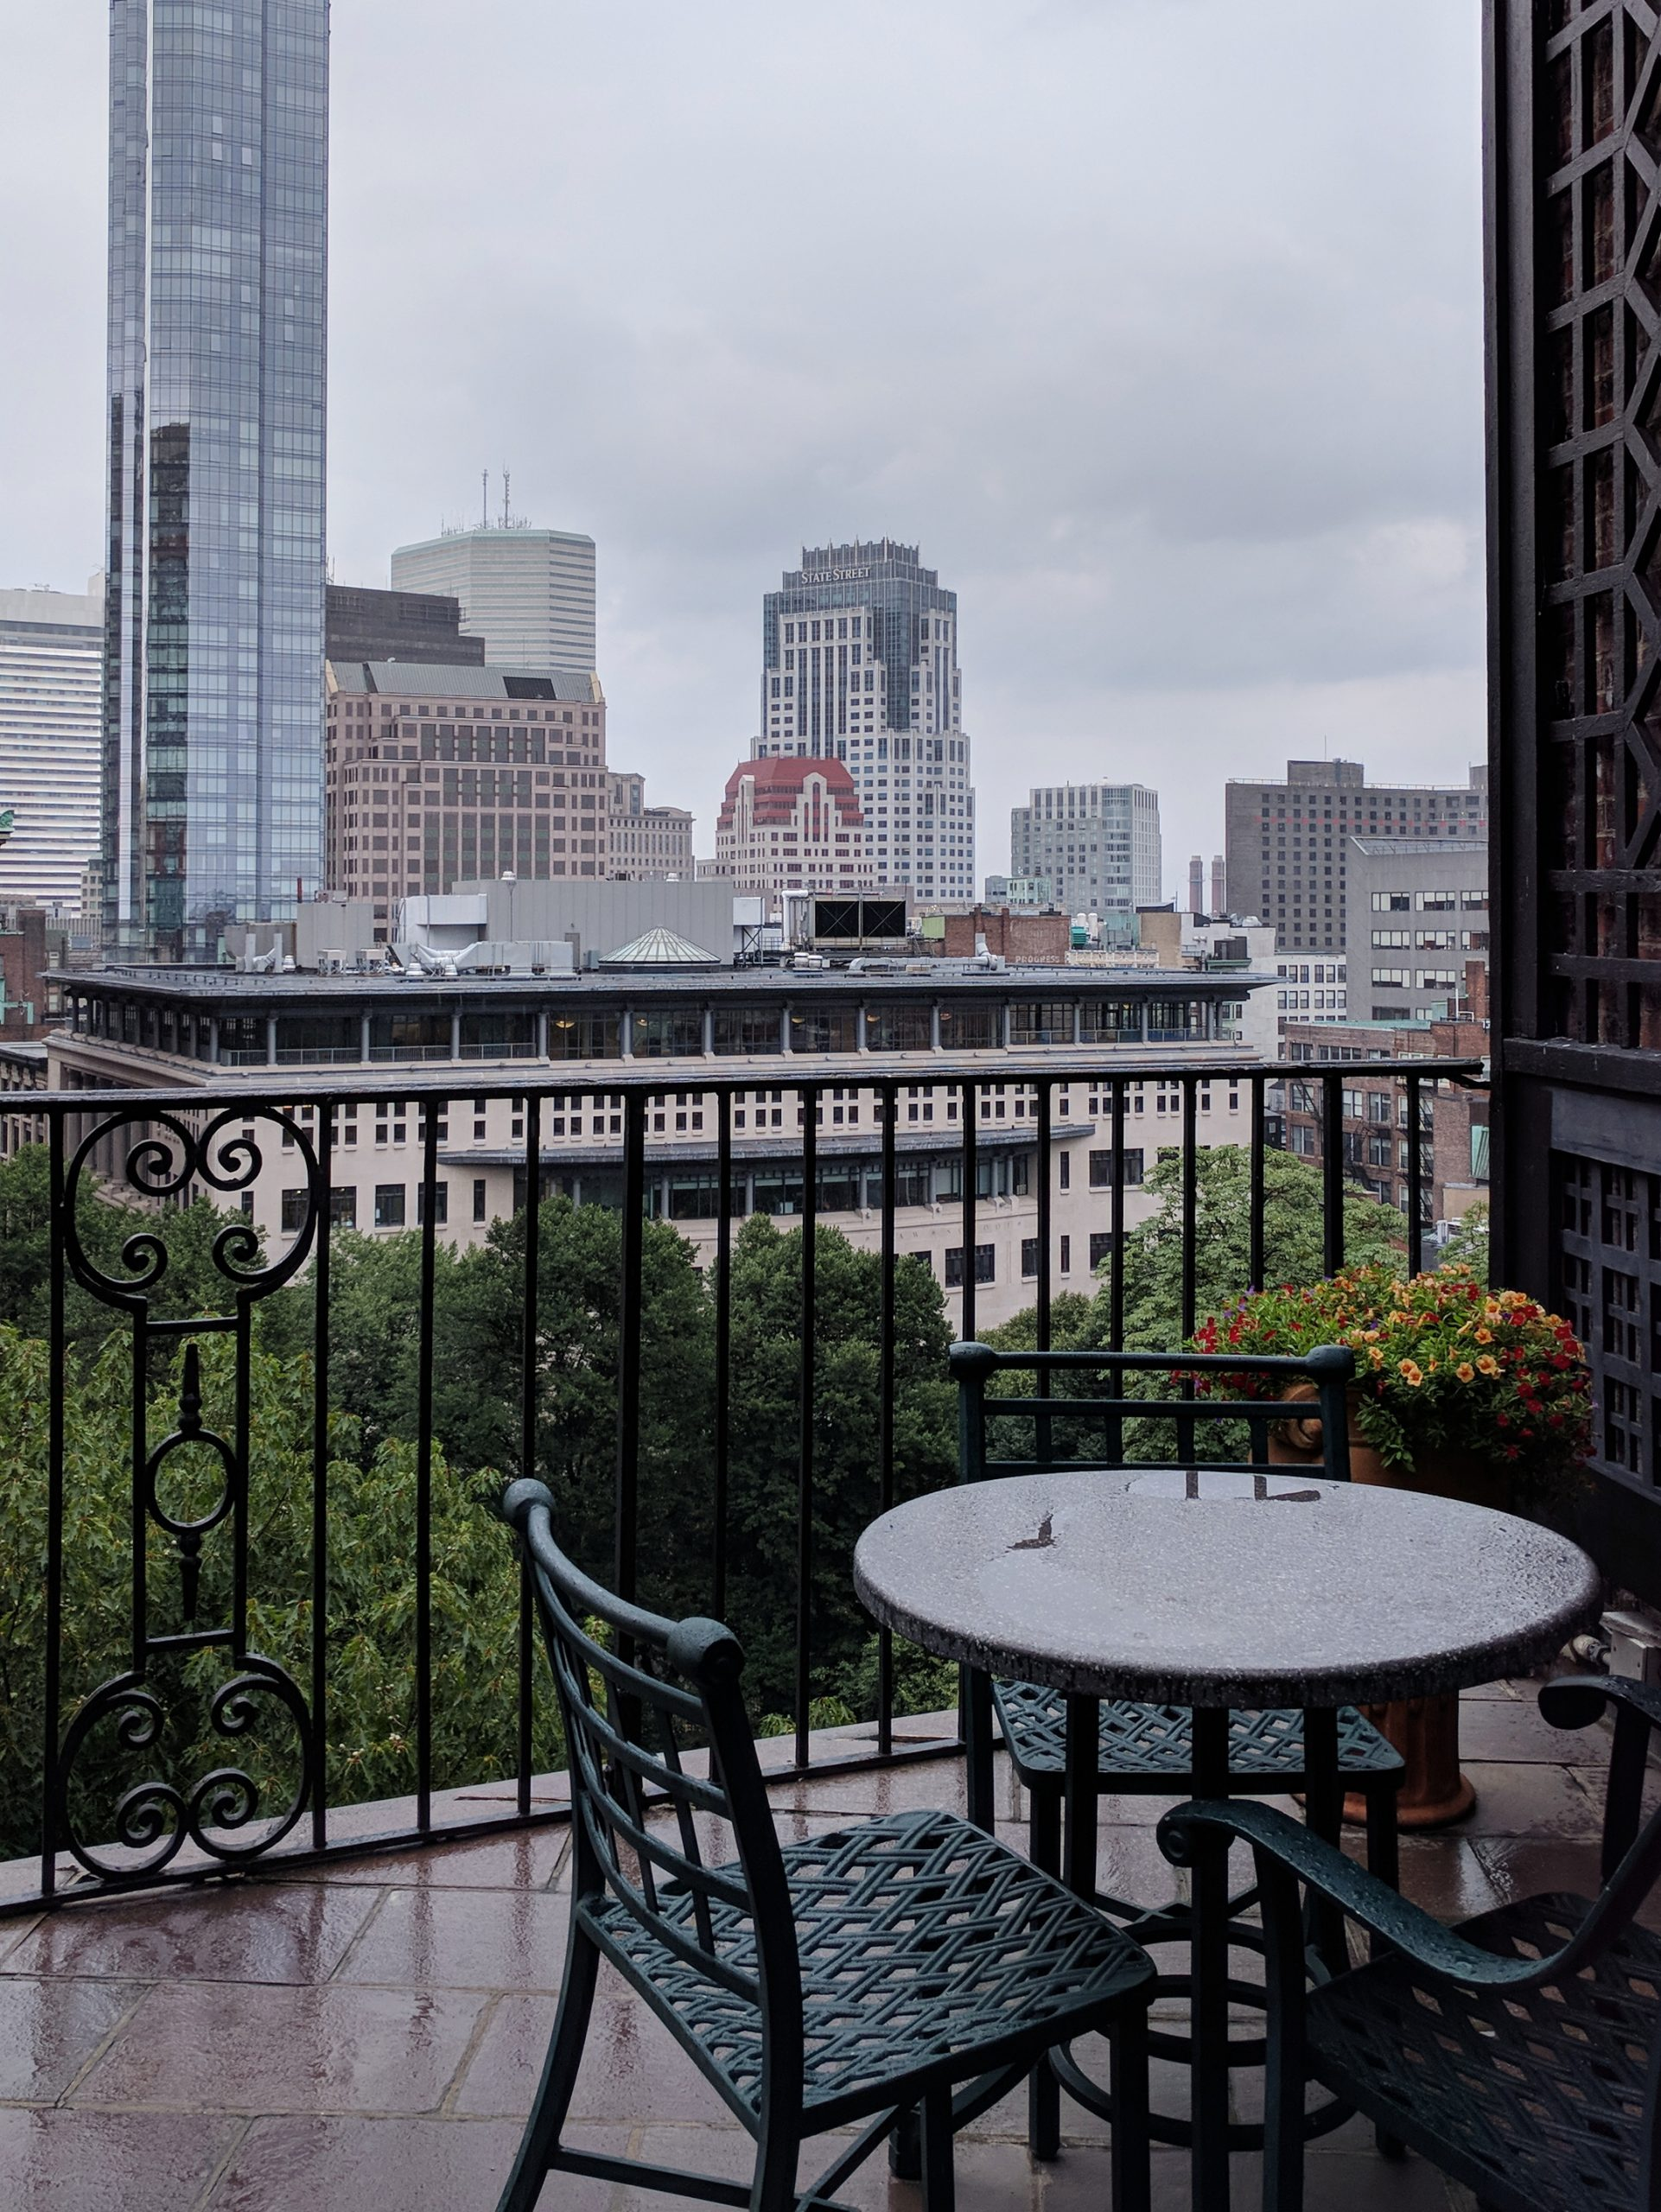 The Boston skyline from the fifth floor patio of the Boston Athenaeum on a gray day with a patio table in the foregroud